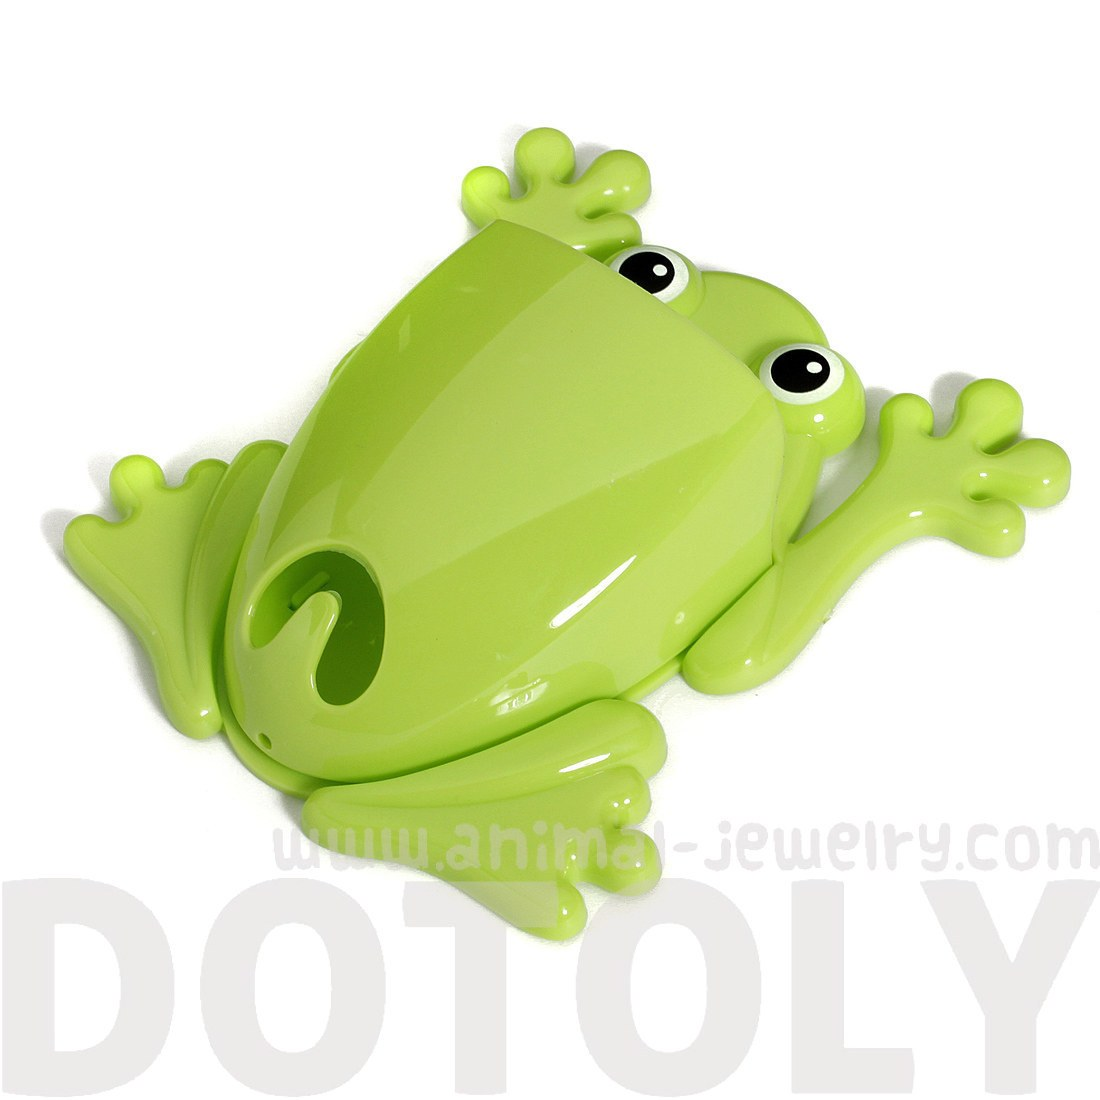 Cute Frog Shaped Toothbrush Holder Make Up Bathroom Organizer in Green